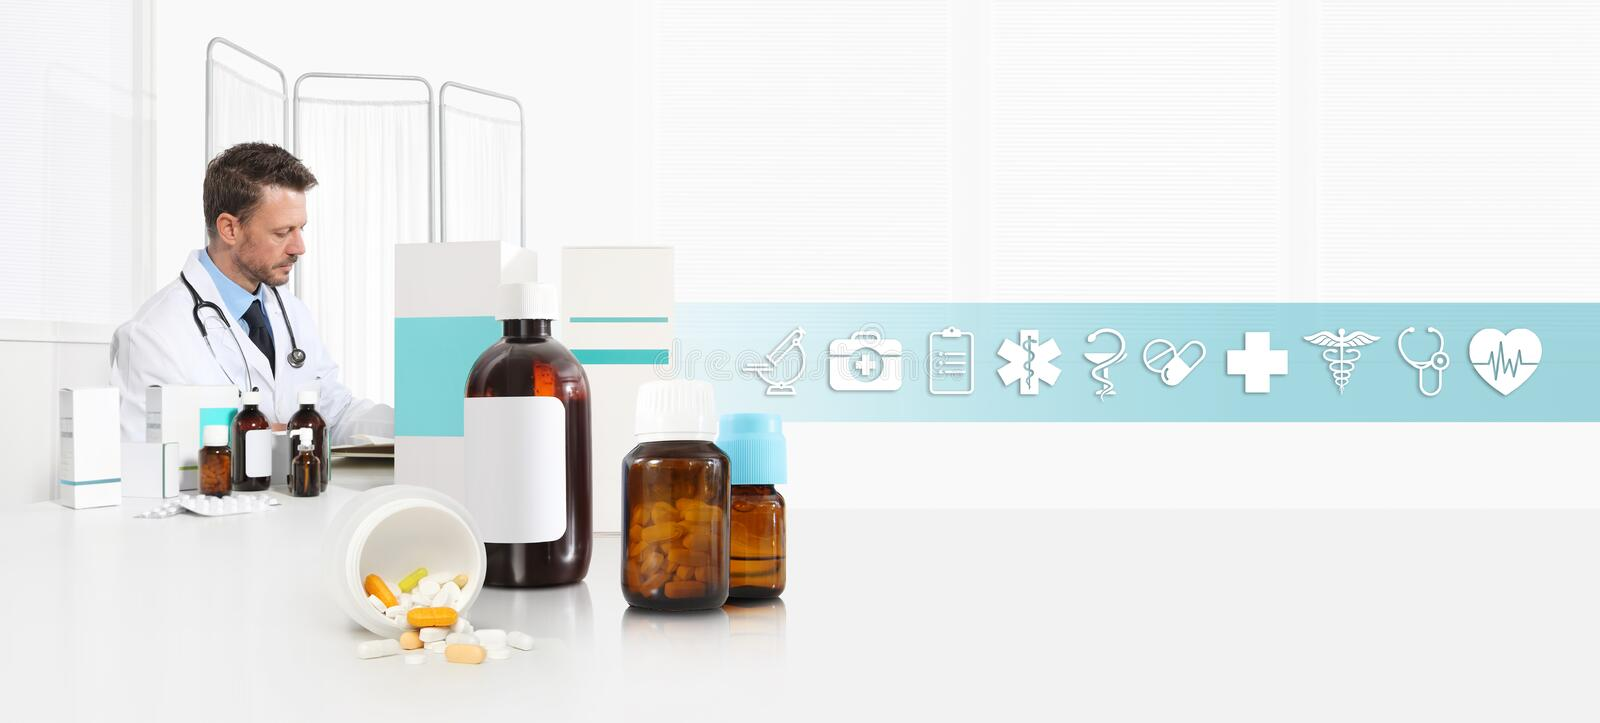 Doctor at desk office with pills, drugs and medicine bottles, internet healthcare and medical symbols icons, web banner and copy royalty free stock image